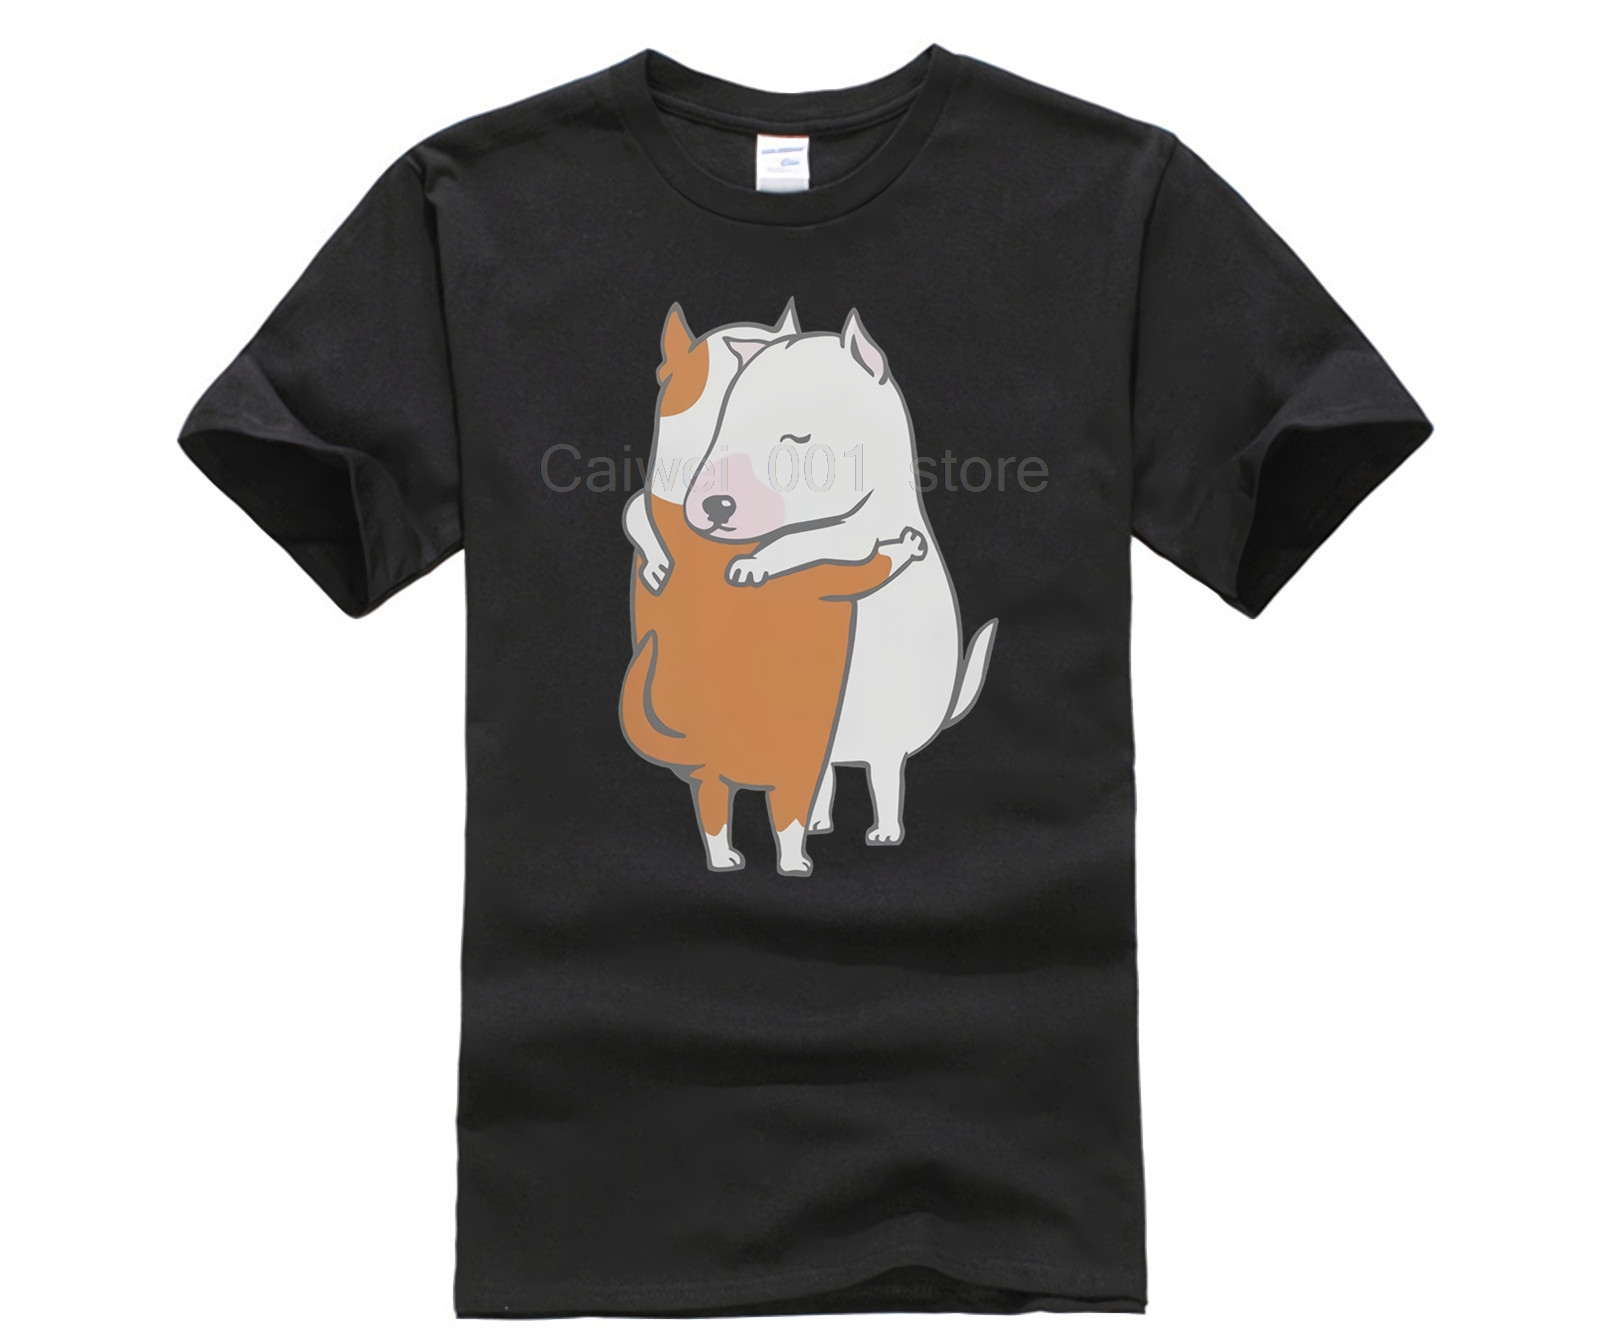 Cotton Sports man's T shirt bull terrier <font><b>hugs</b></font> <font><b>tshirts</b></font> Printed T shirt crew neck short sleeve casual T shirt image